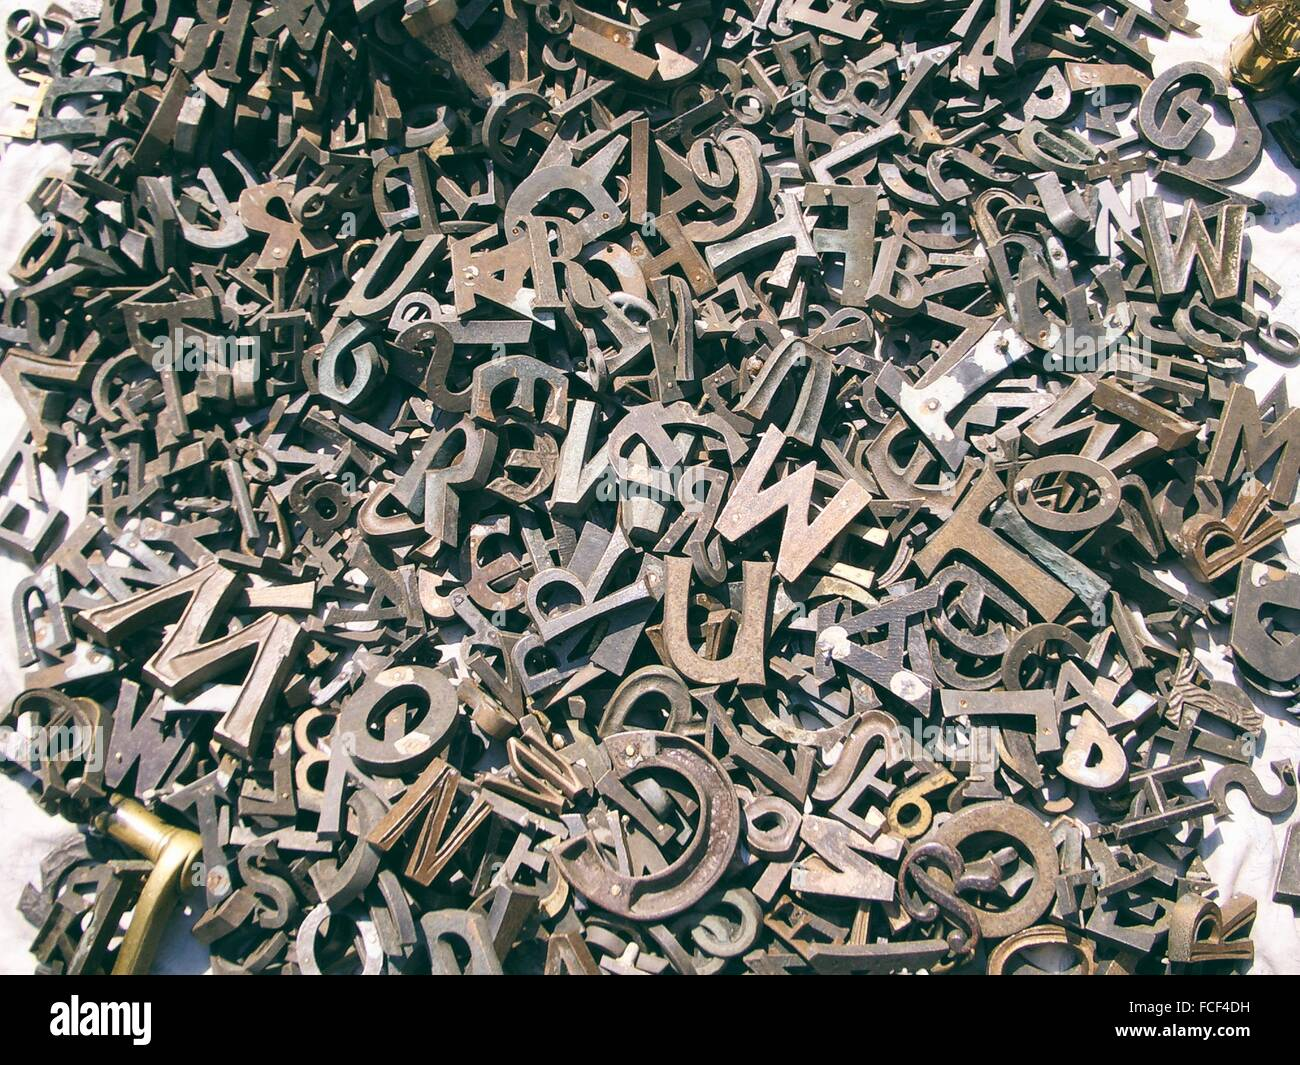 Capital Letters On White Background - Stock Image